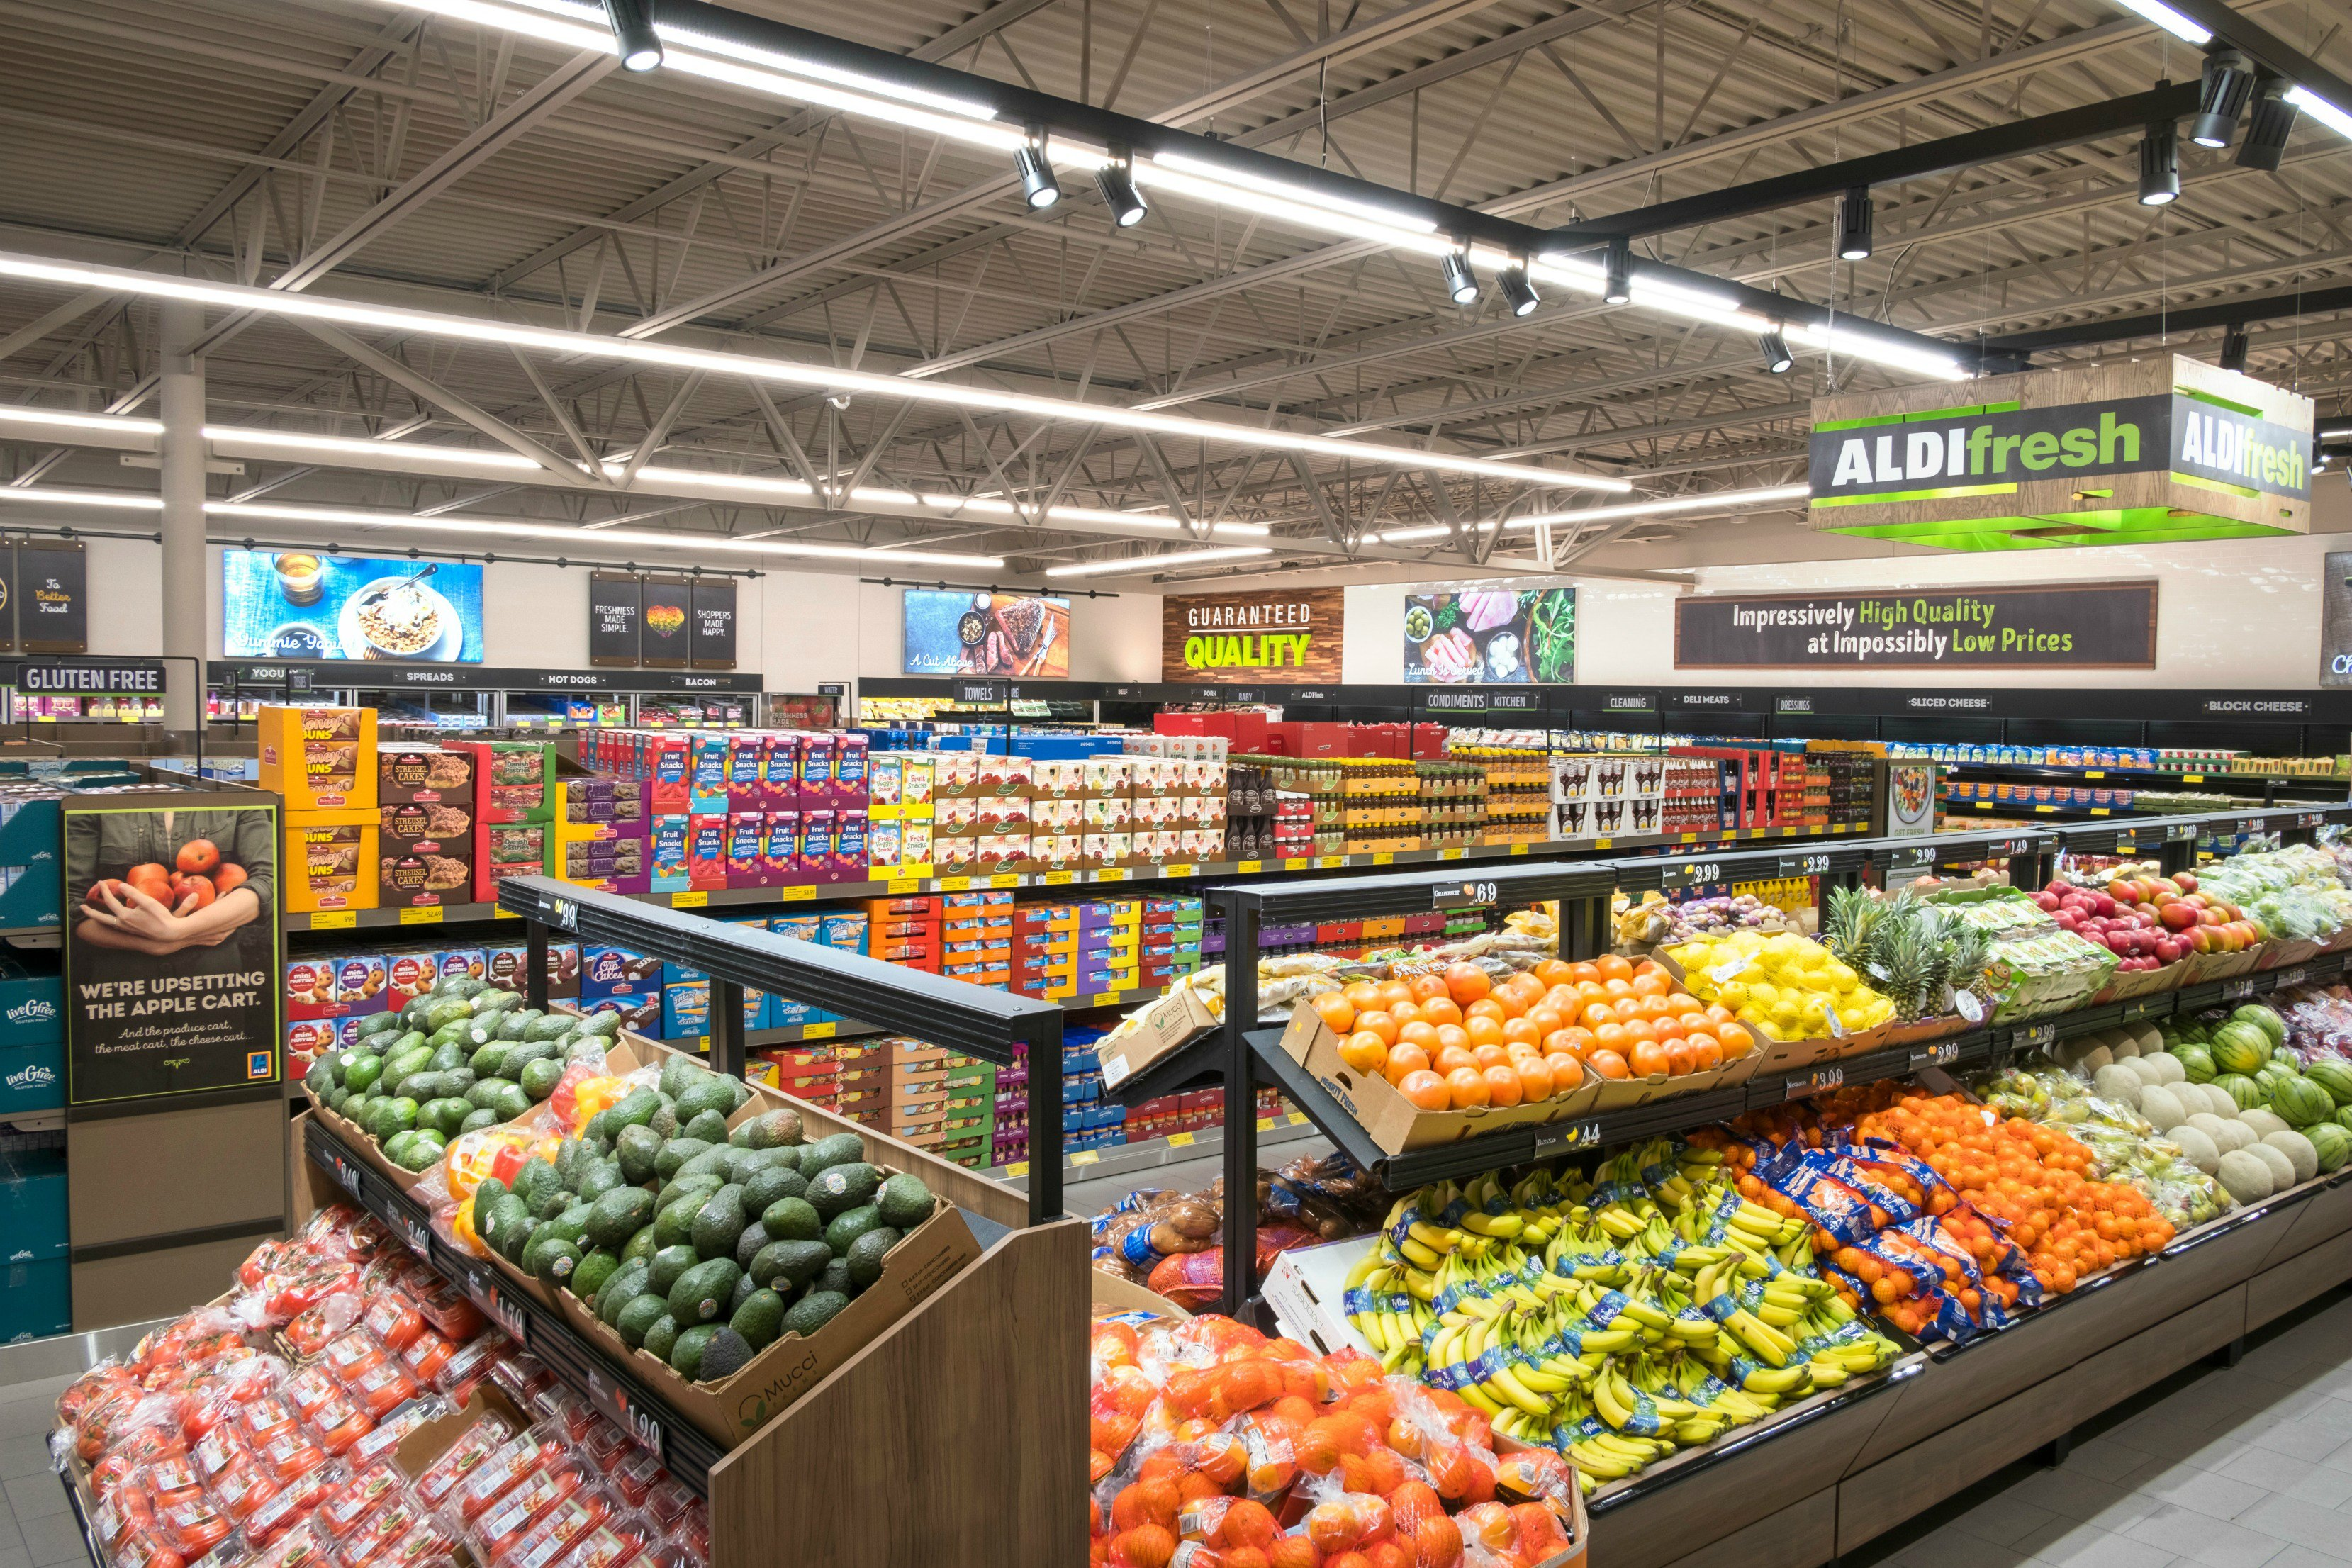 How to save even more at aldi aldifreshproduce fandeluxe Choice Image